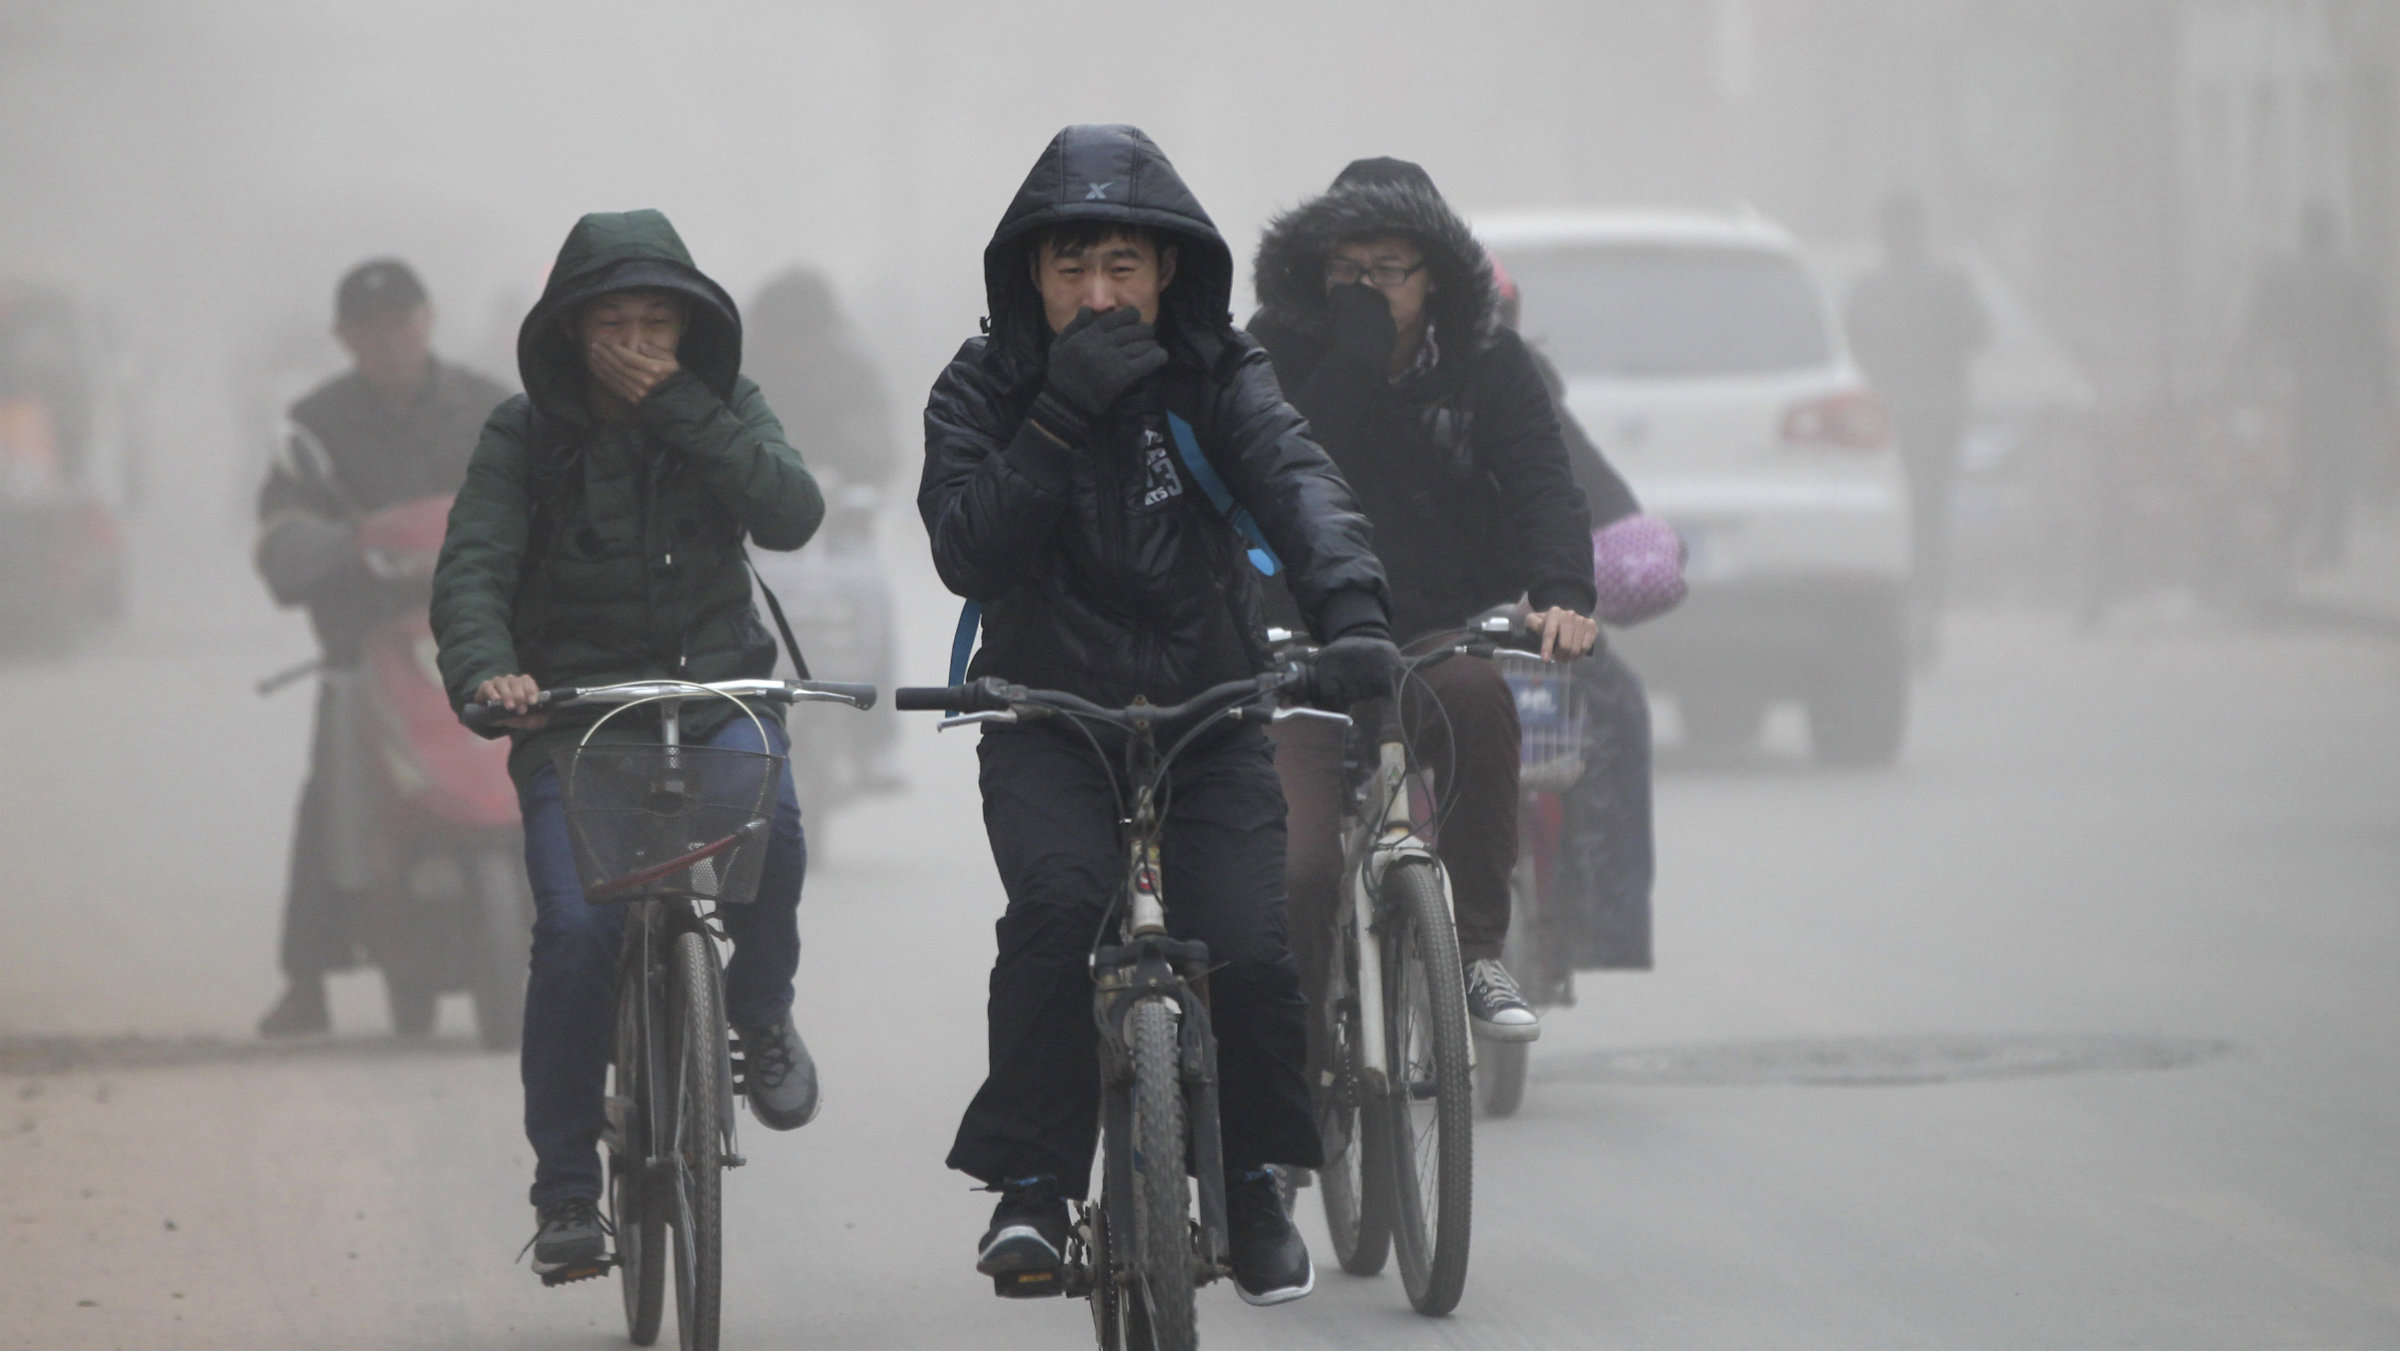 Residents cover their face from dust as they ride their bicycles along a street on a hazy day in Zhengzhou, Henan province December 10, 2013.  REUTERS/Stringer